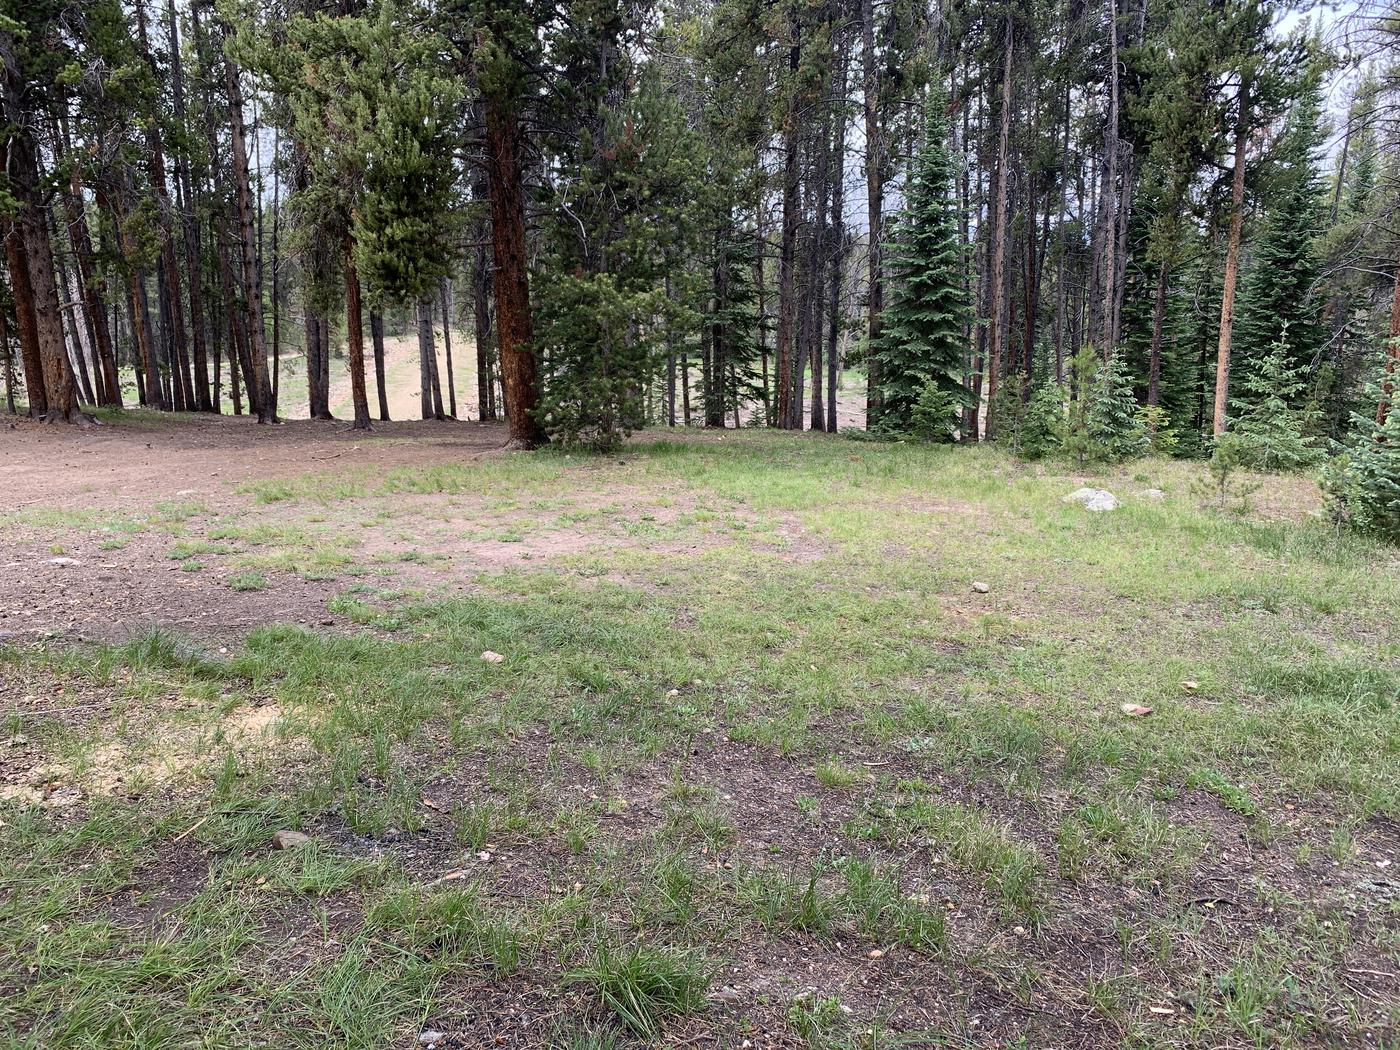 Expansive tent area at Molly Brown Campground, site 36